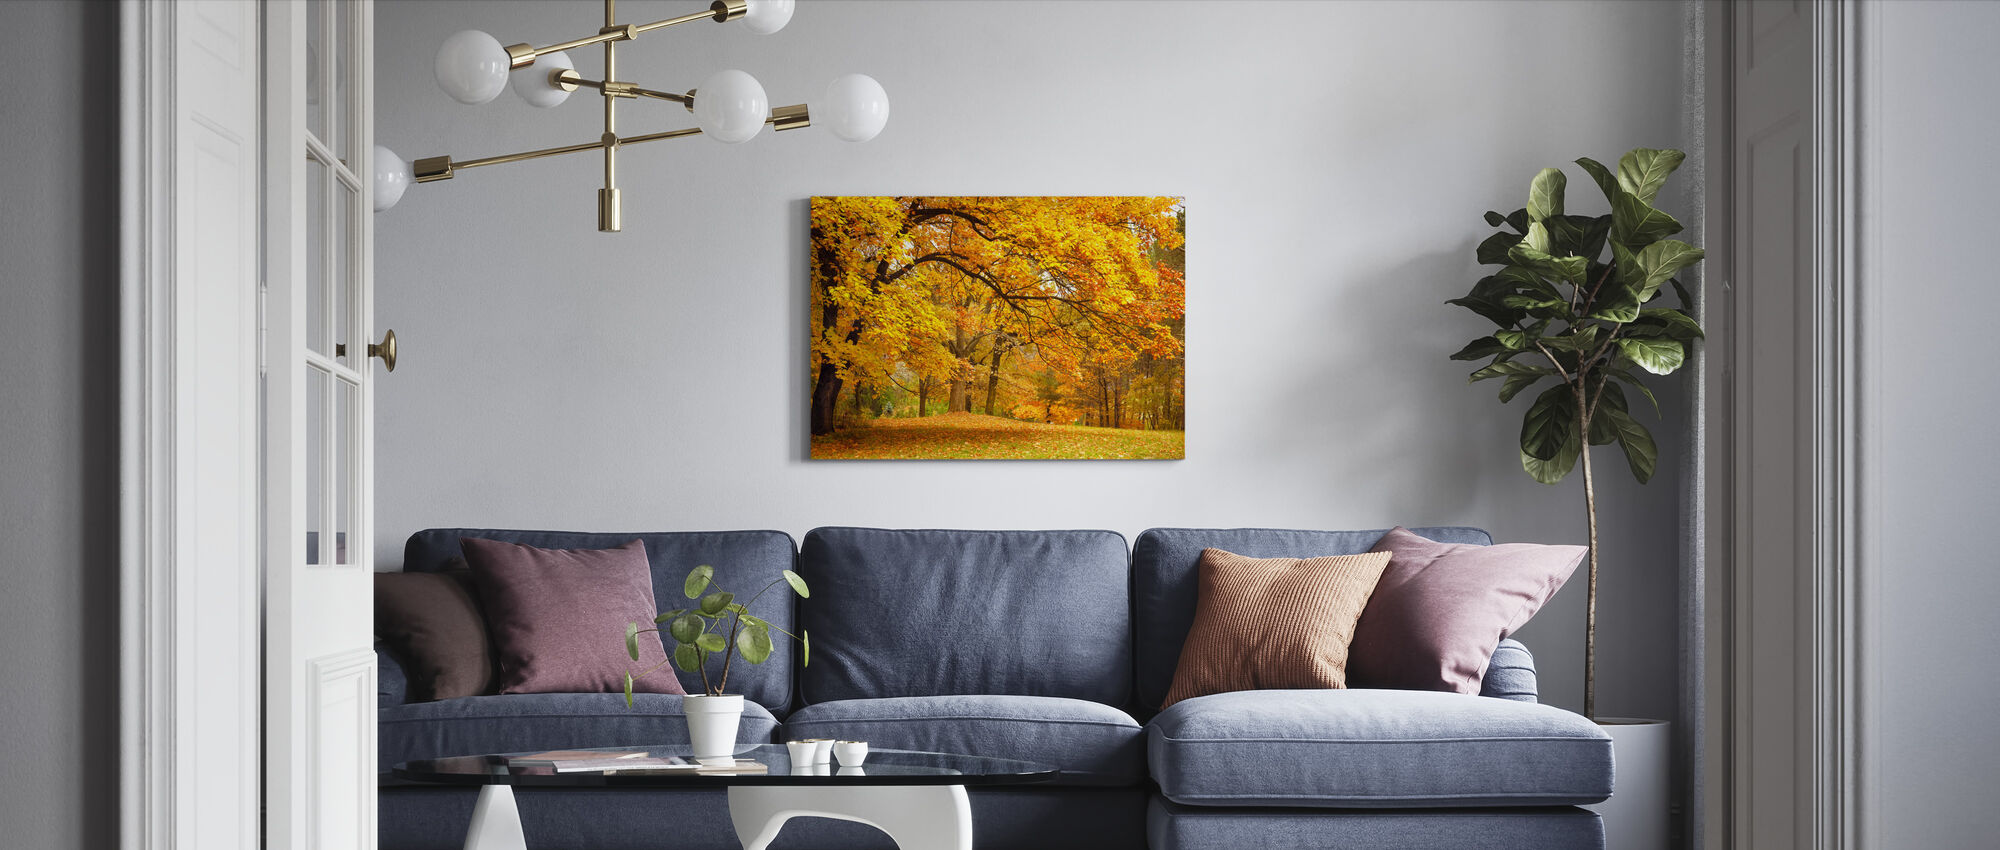 Colorful Autumn Leaves - Canvas print - Living Room